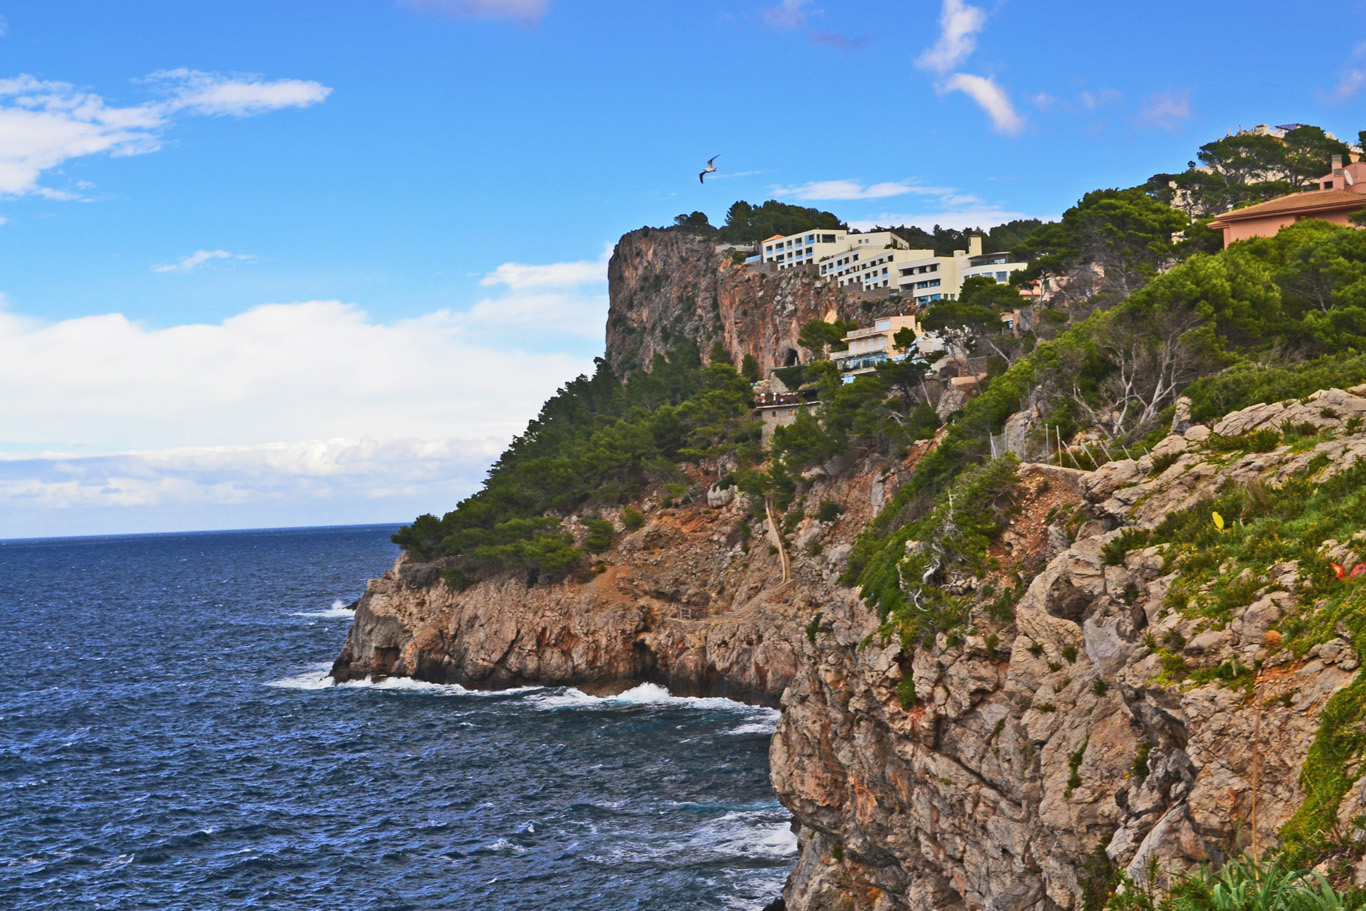 Cliffs at Port de Soller